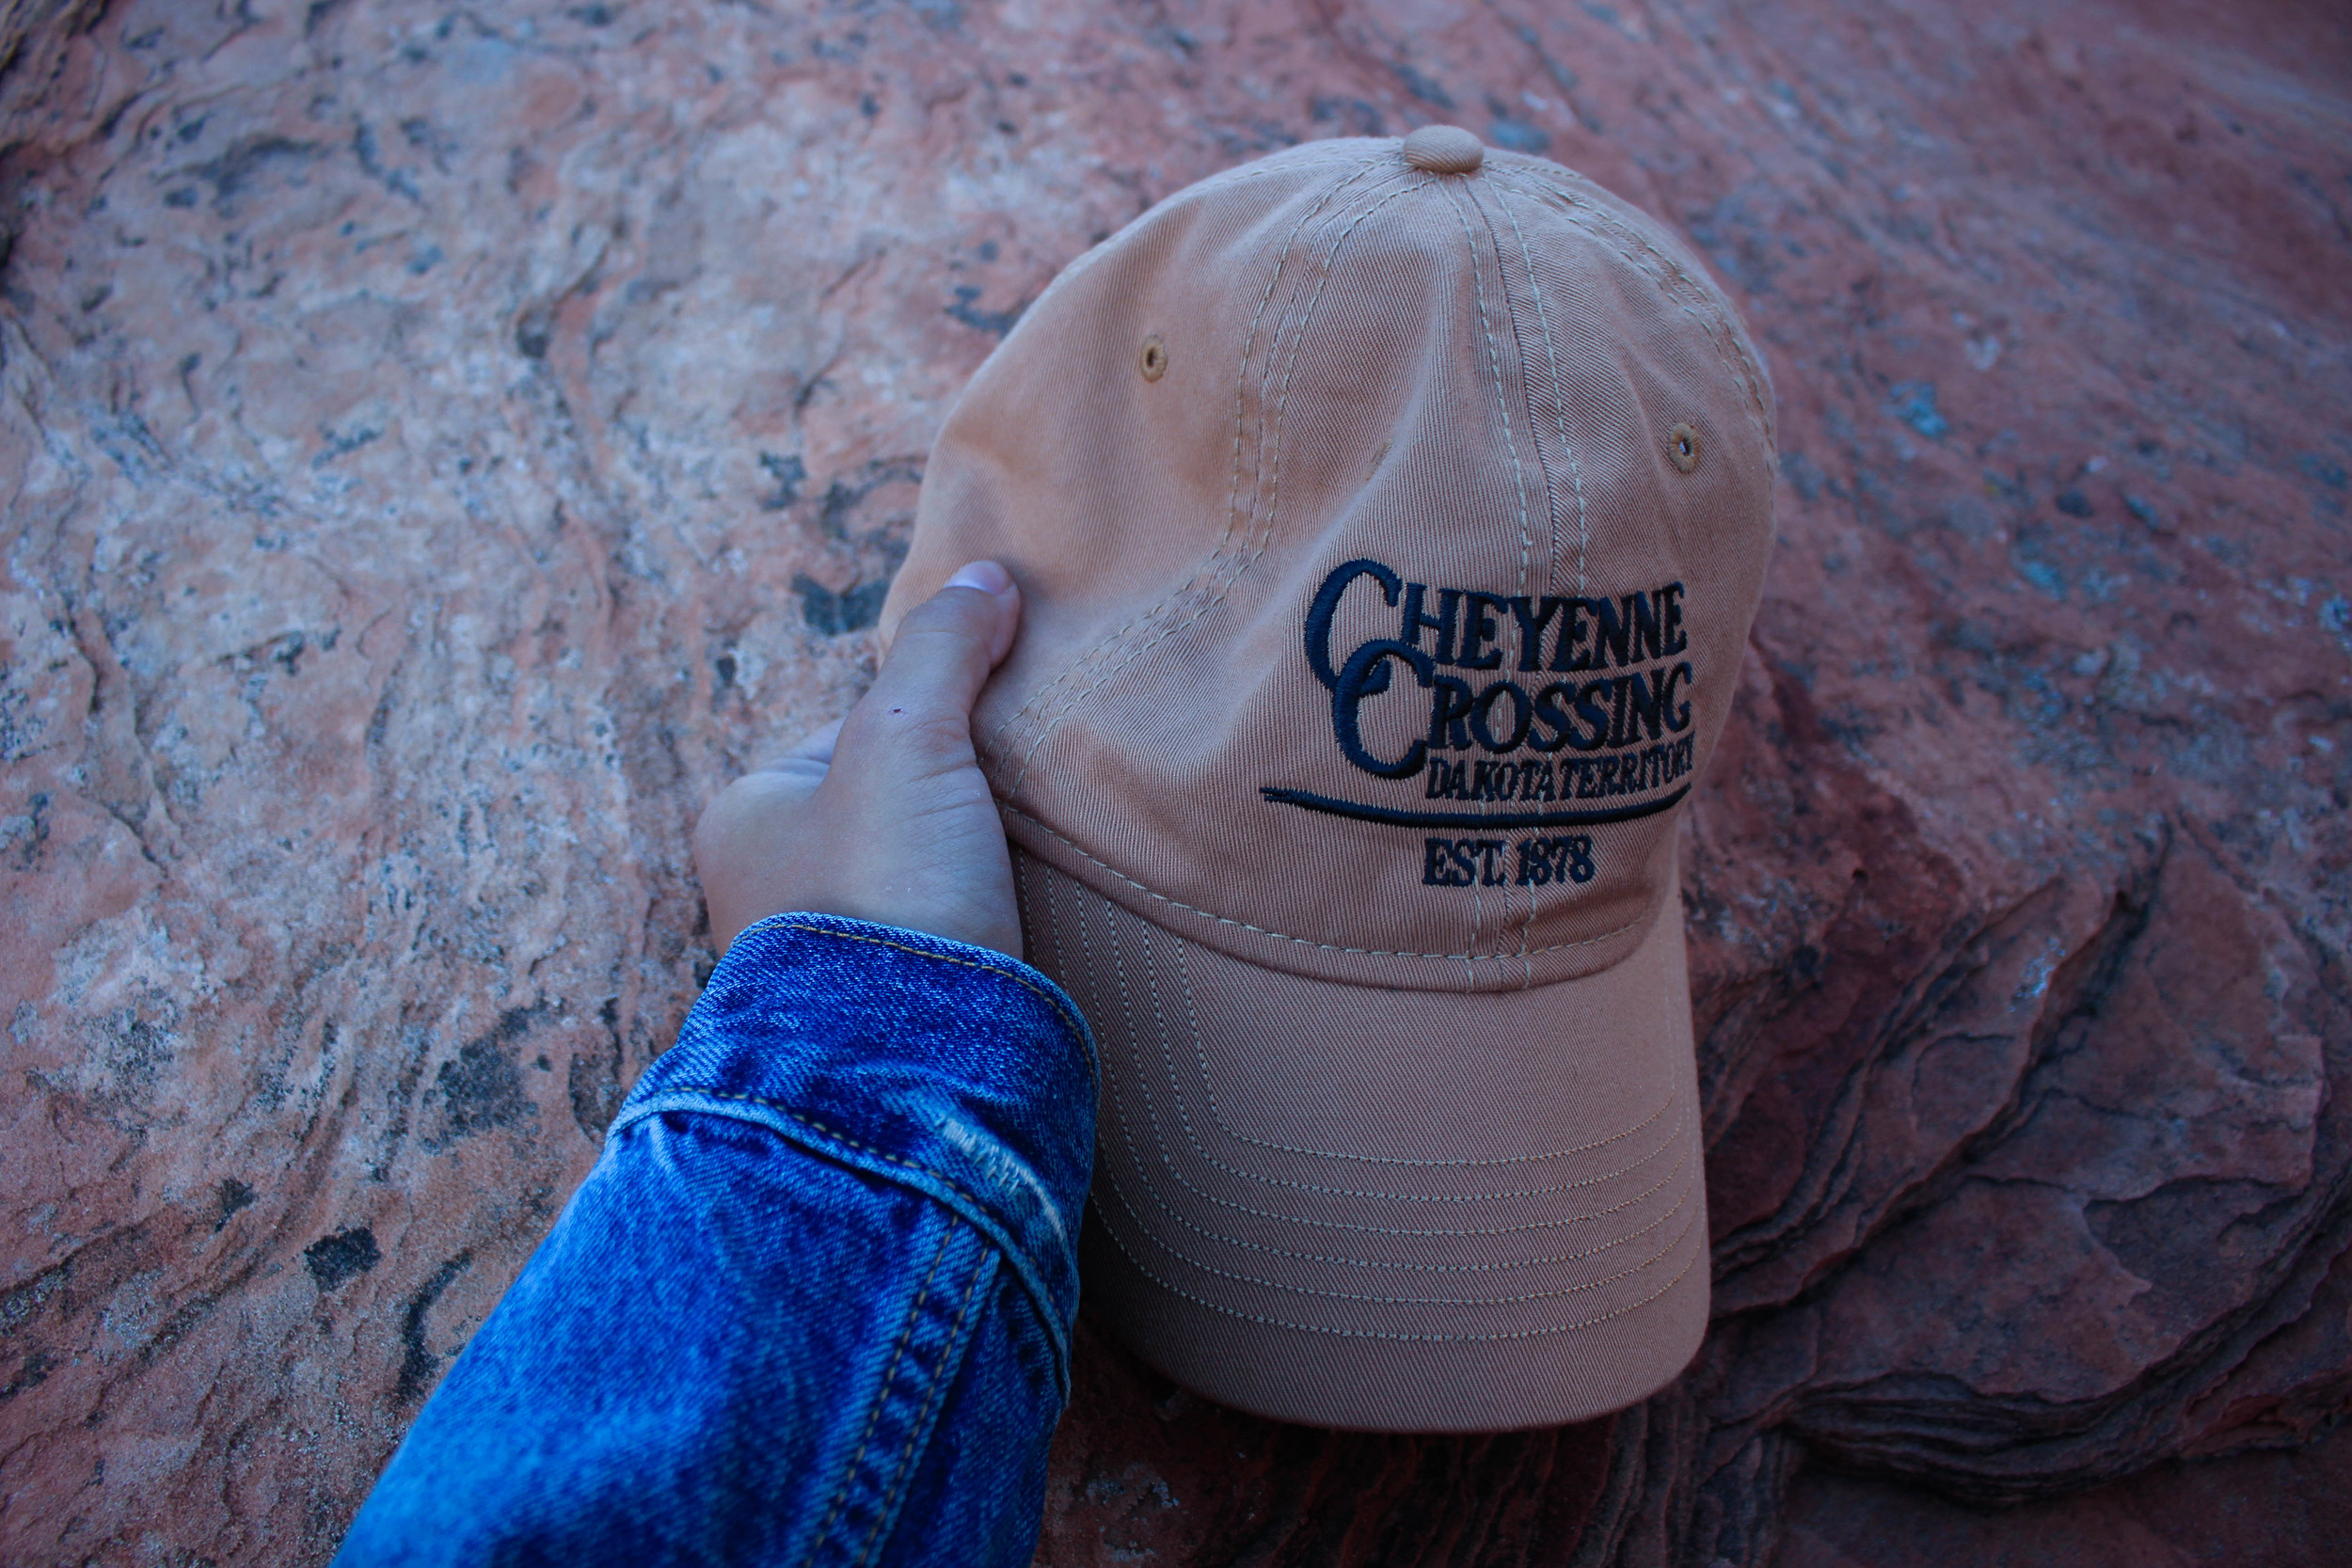 My cap from Cheyenne Crossing in the Black Hills pictured in Zion National Park, Utah.